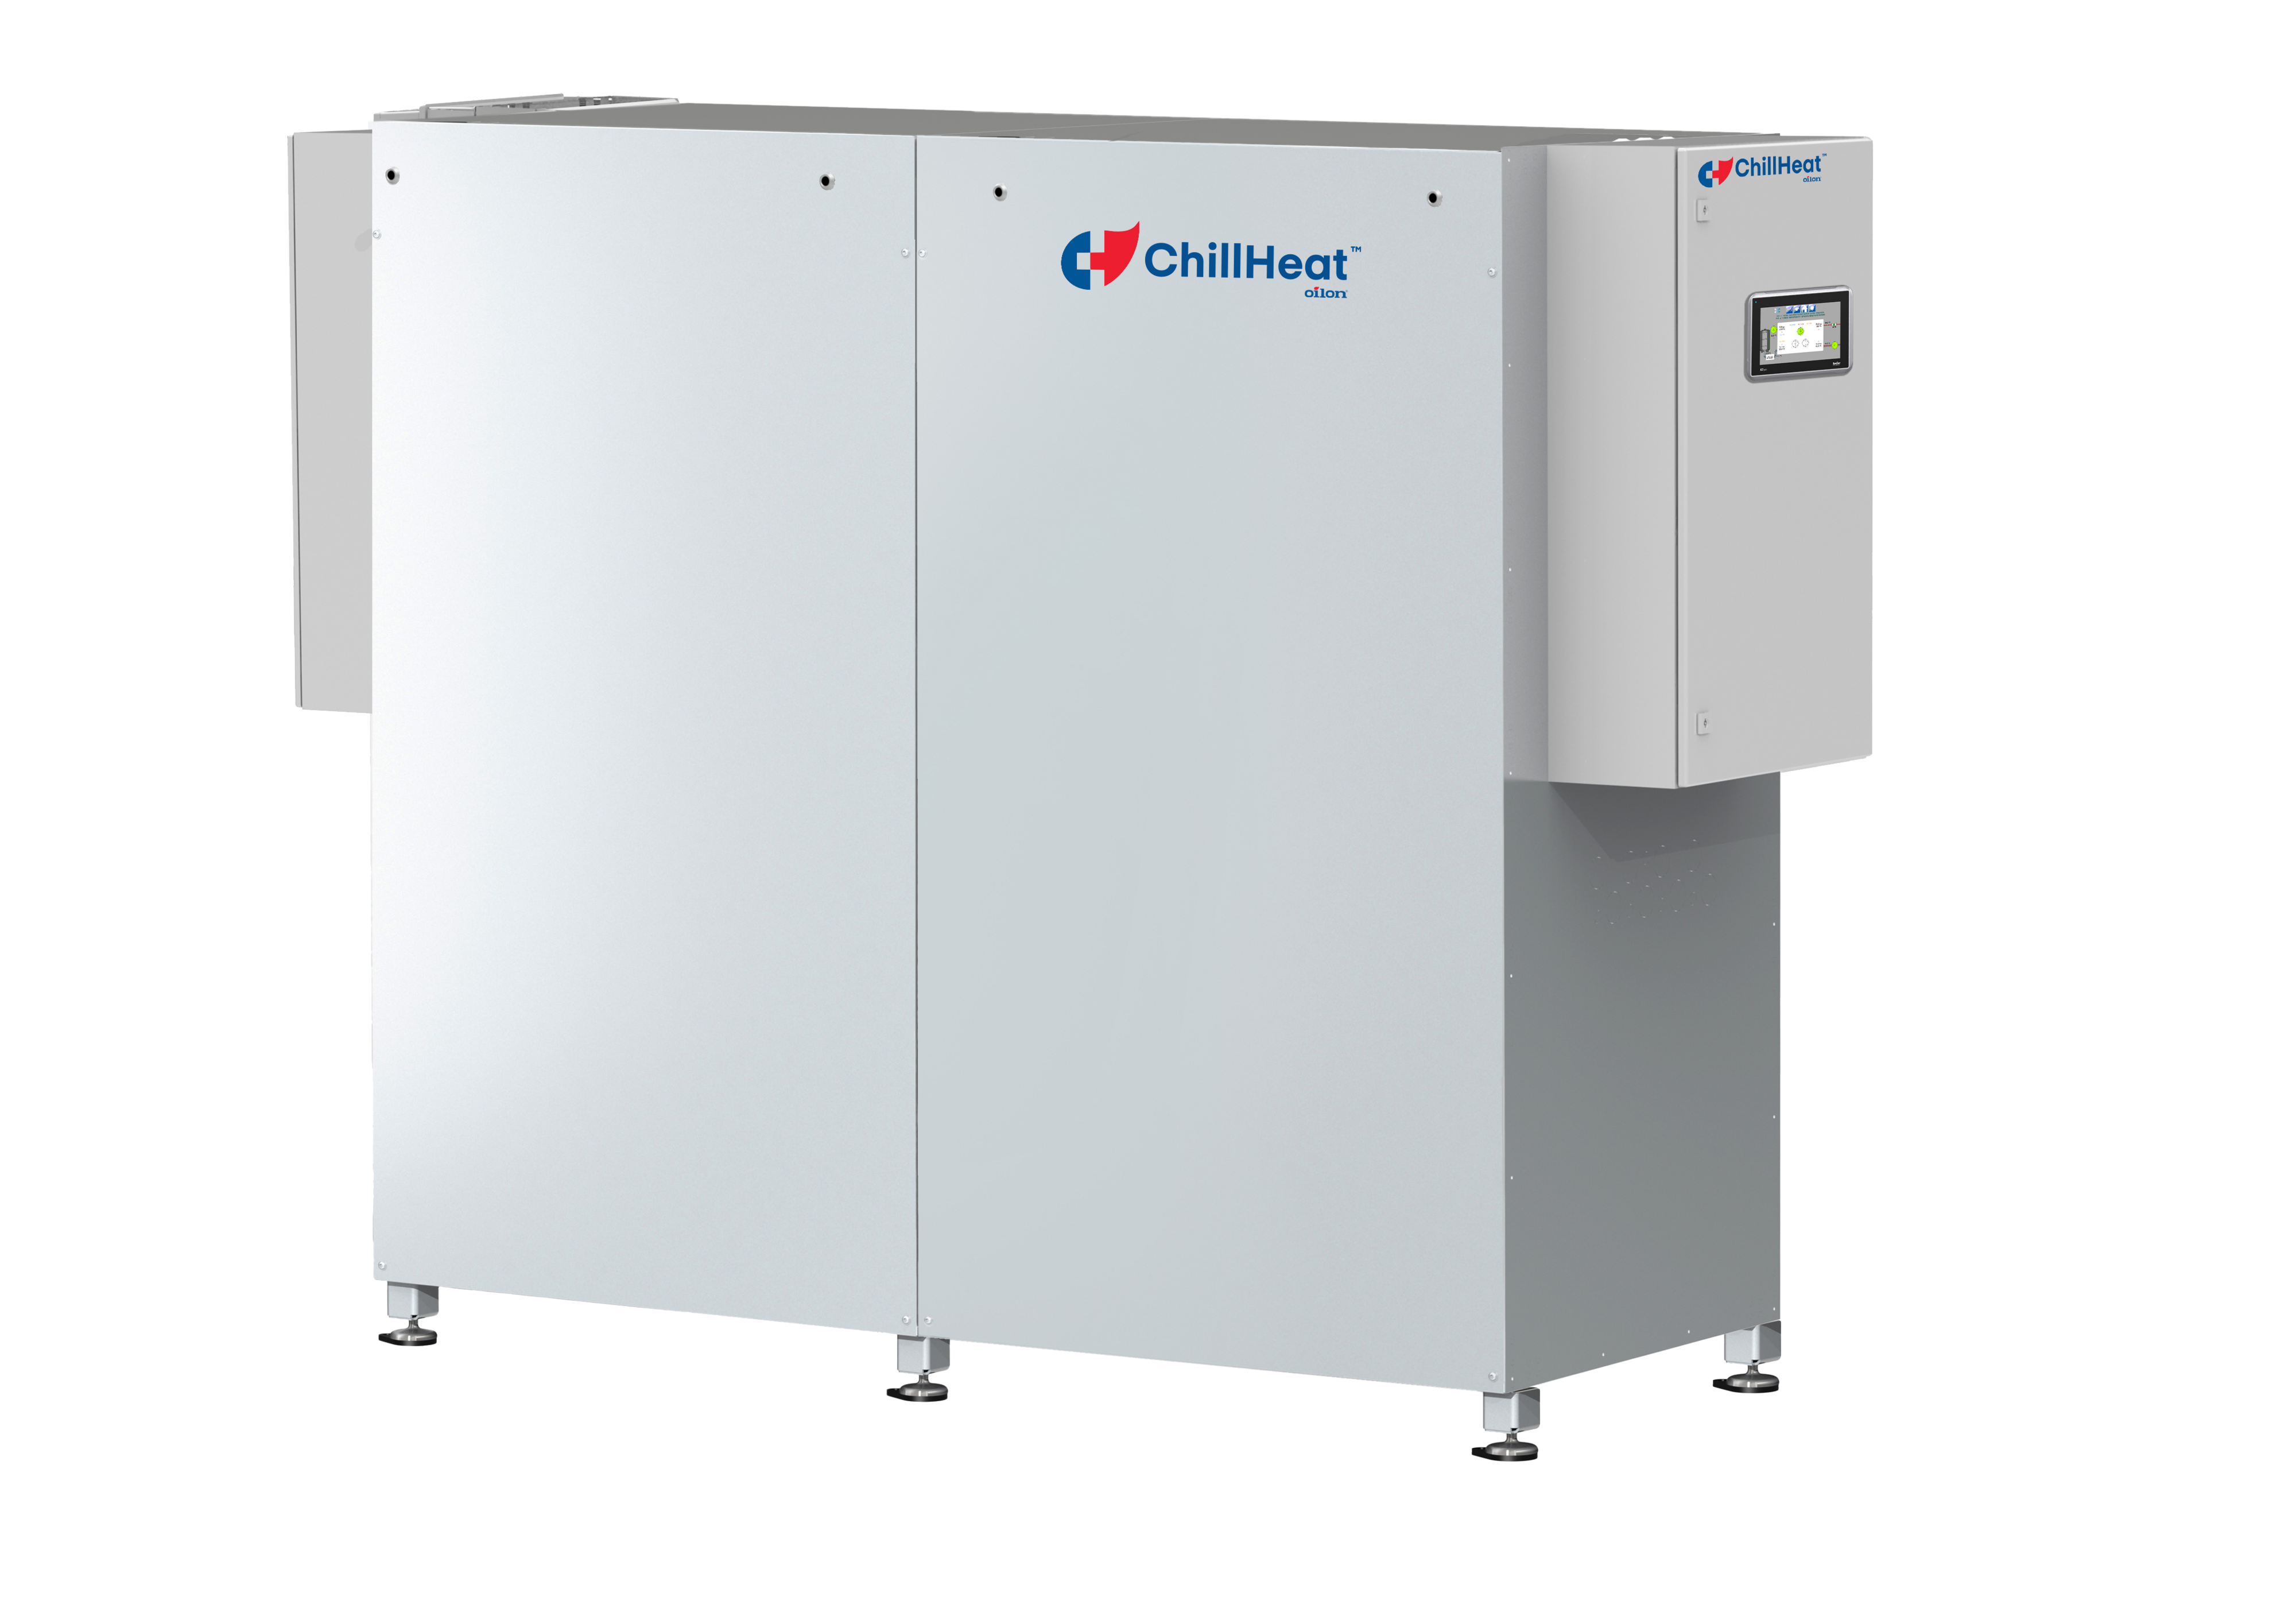 Oilon ChillHeat S serie heat pump